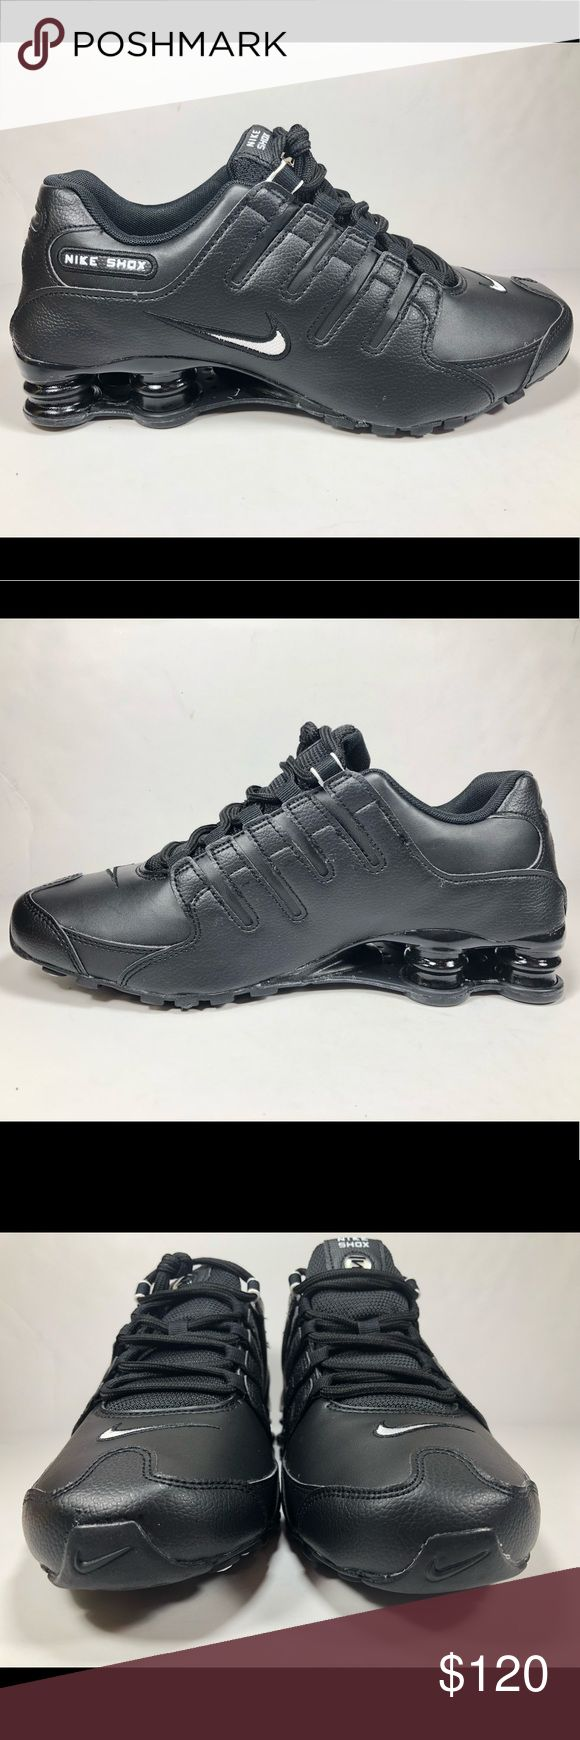 Nike Mens Sz 9 Nike Shox NZ Black Running Shoes Excellent Like New Condition Never Worn New Without Box See Picture For Details. S514 Nike Shoes Sneakers